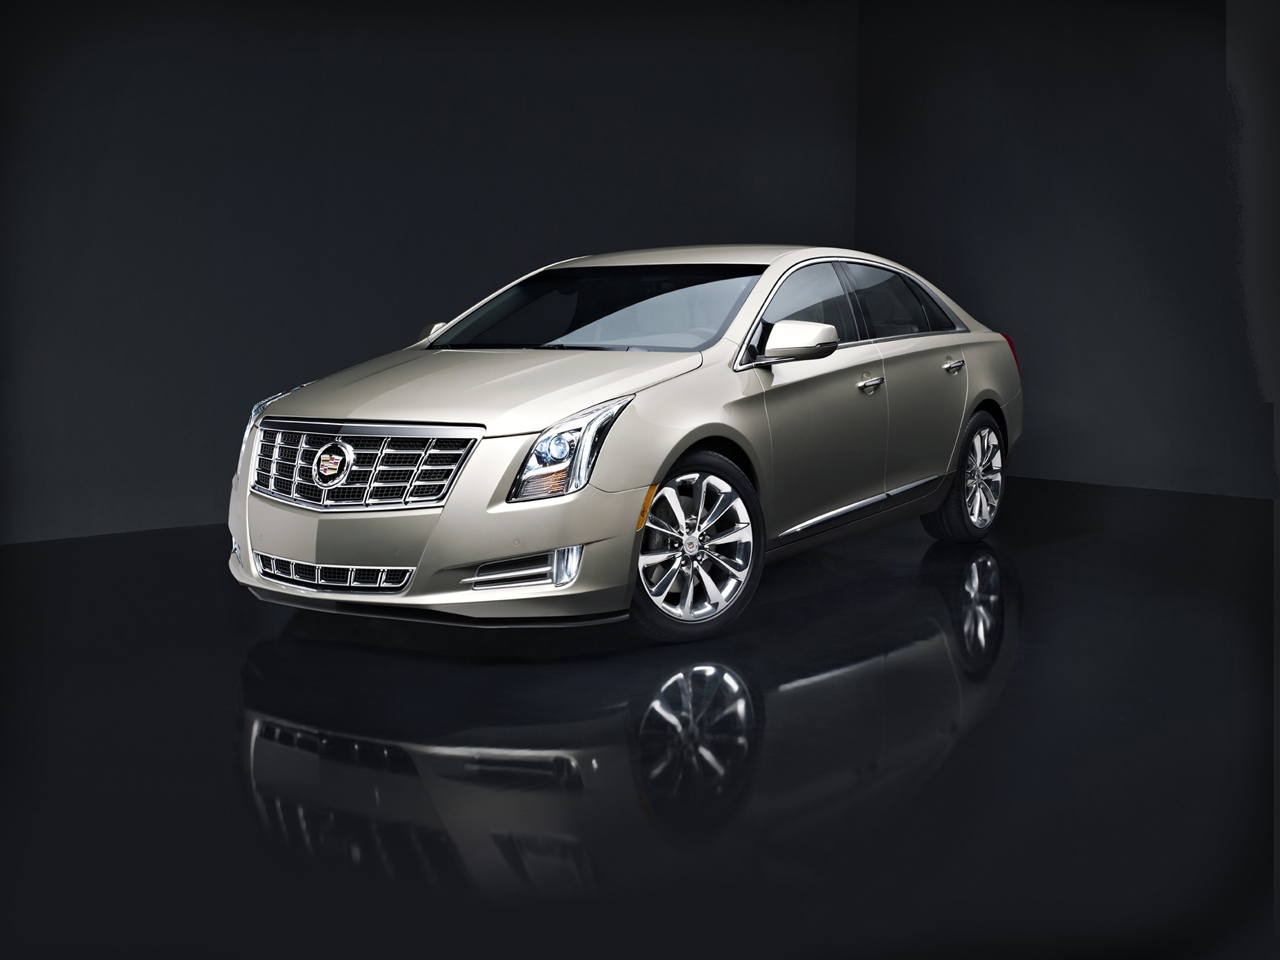 2014 cadillac xts gets 410 hp twin turbo v6 autoblog. Black Bedroom Furniture Sets. Home Design Ideas